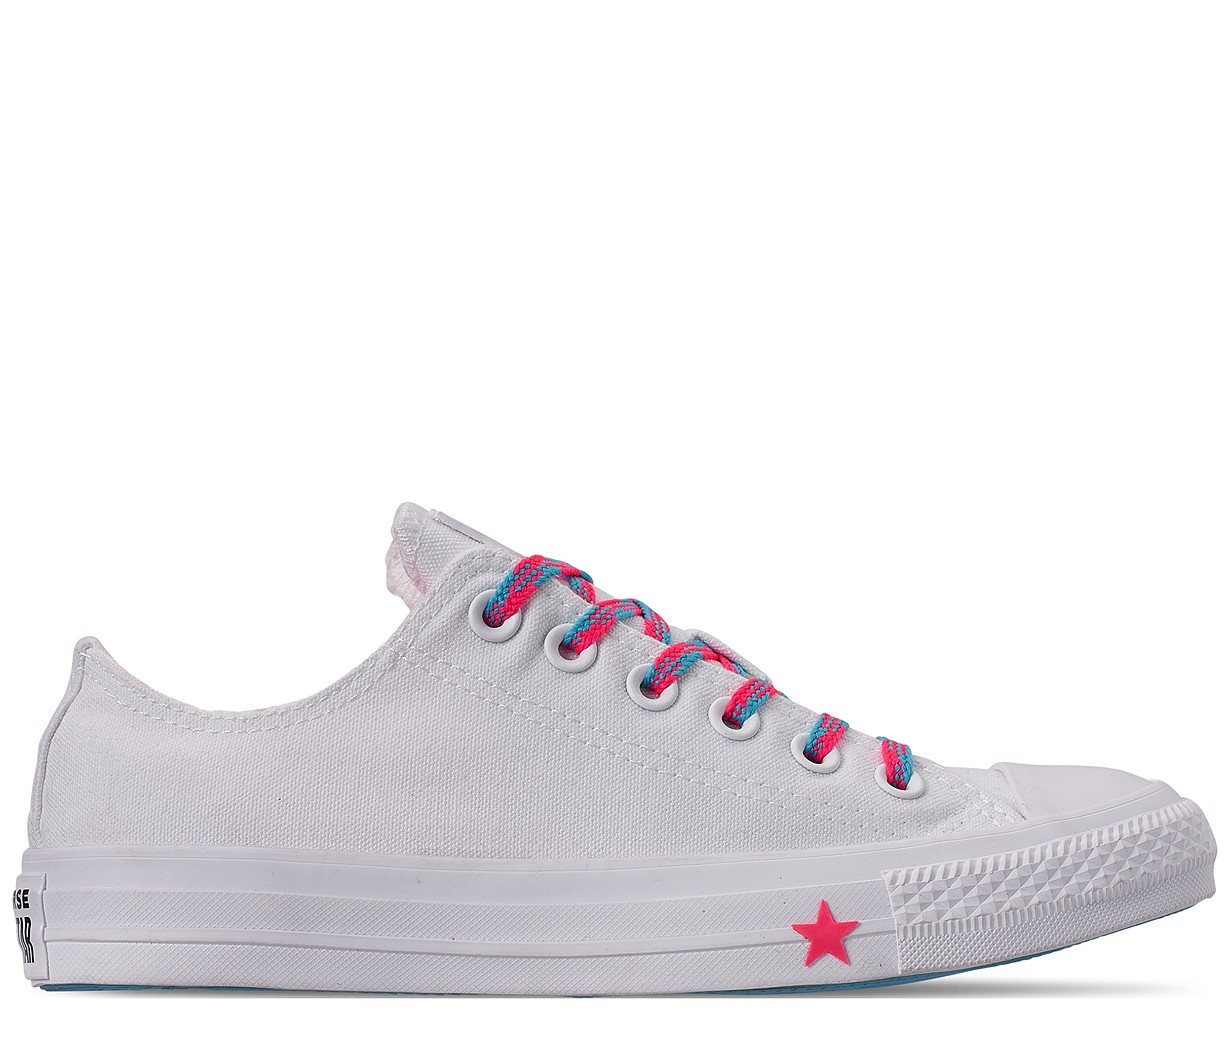 8771c41ec Converse biele tenisky Chuck Taylor All Star OX White/Race Pink/Gnarly Blue  -